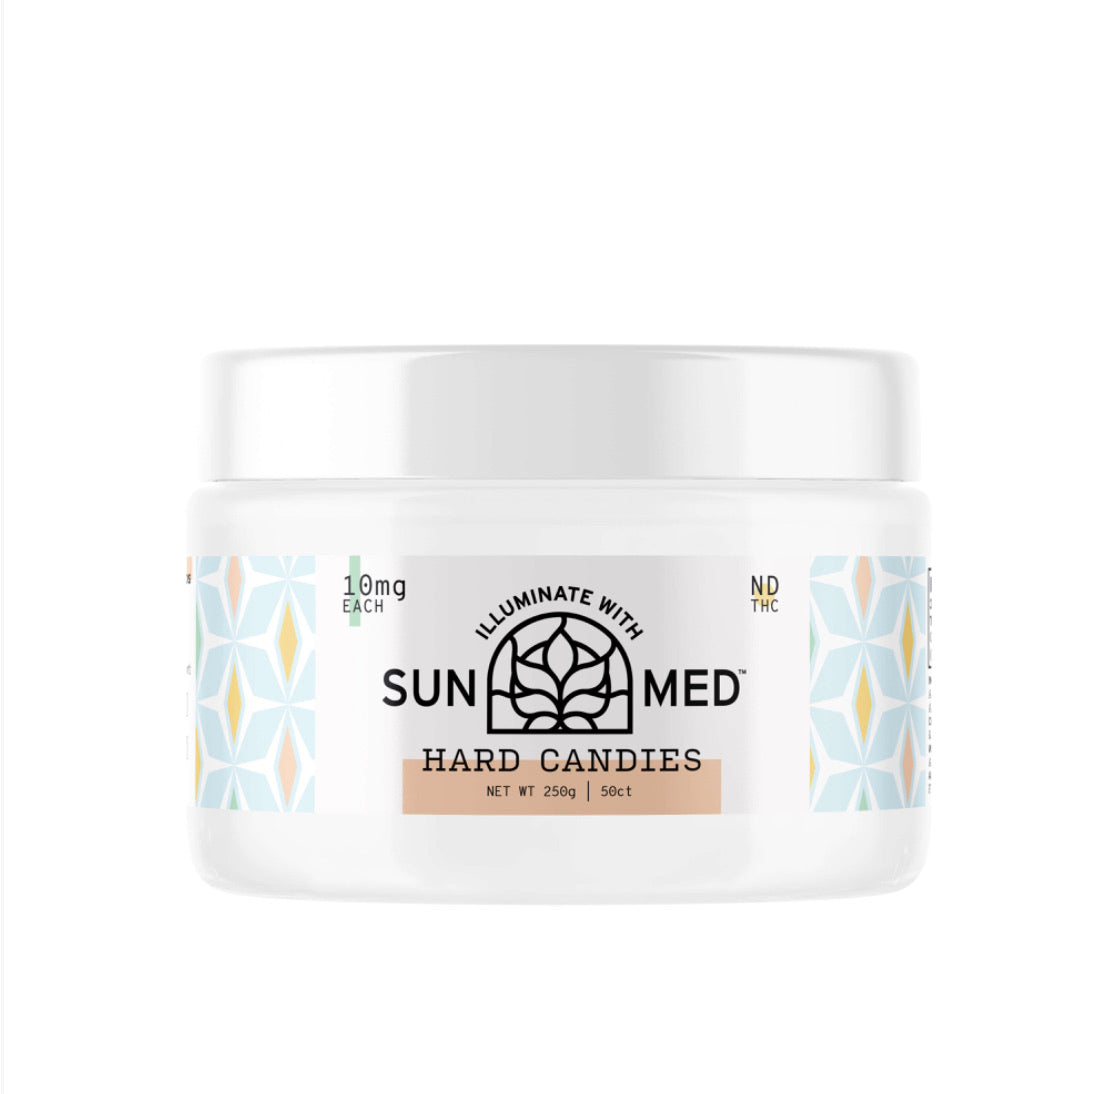 sunmed cbd hard candies 10mg each. Your CBD Store Spring Tx